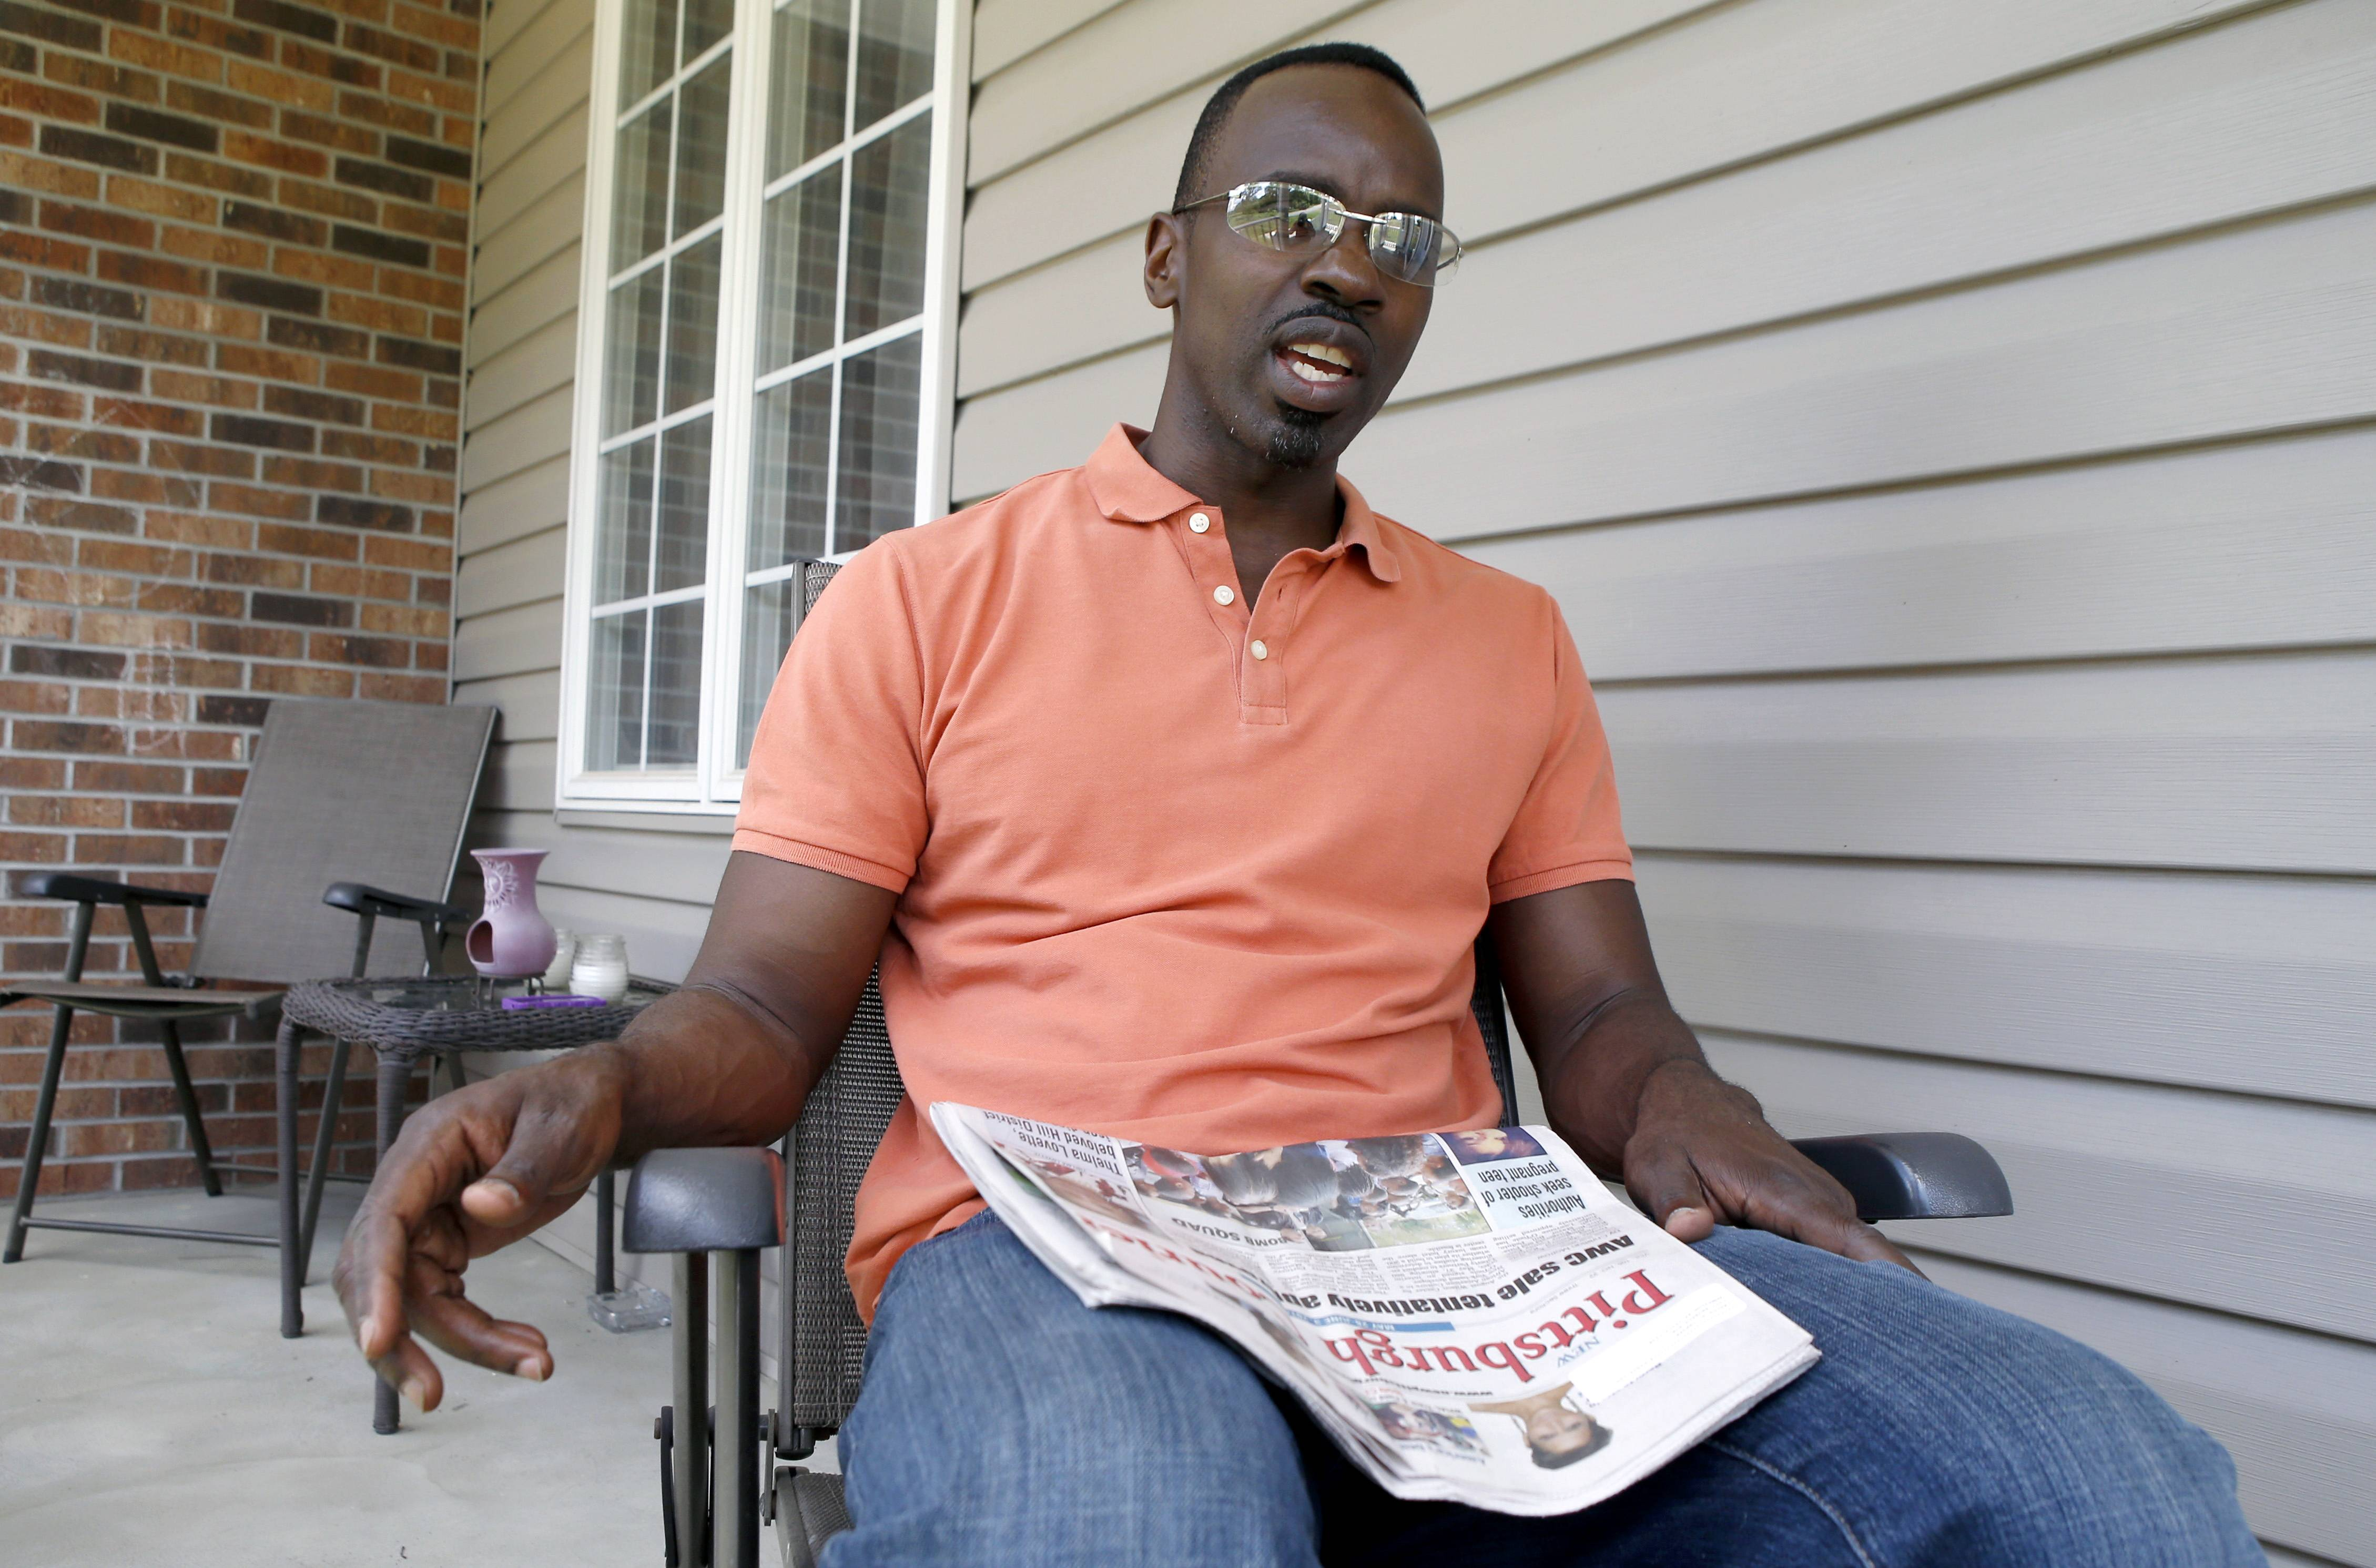 Carlos Carter talks about the feelings he had at the time of the O.J. Simpson arrest, trial and decision 20 years-ago while sitting on his porch in Ambridge, Pa. Polls show that 20 years after Simpson's case captivated and divided the nation, few opinions about the saga have changed.